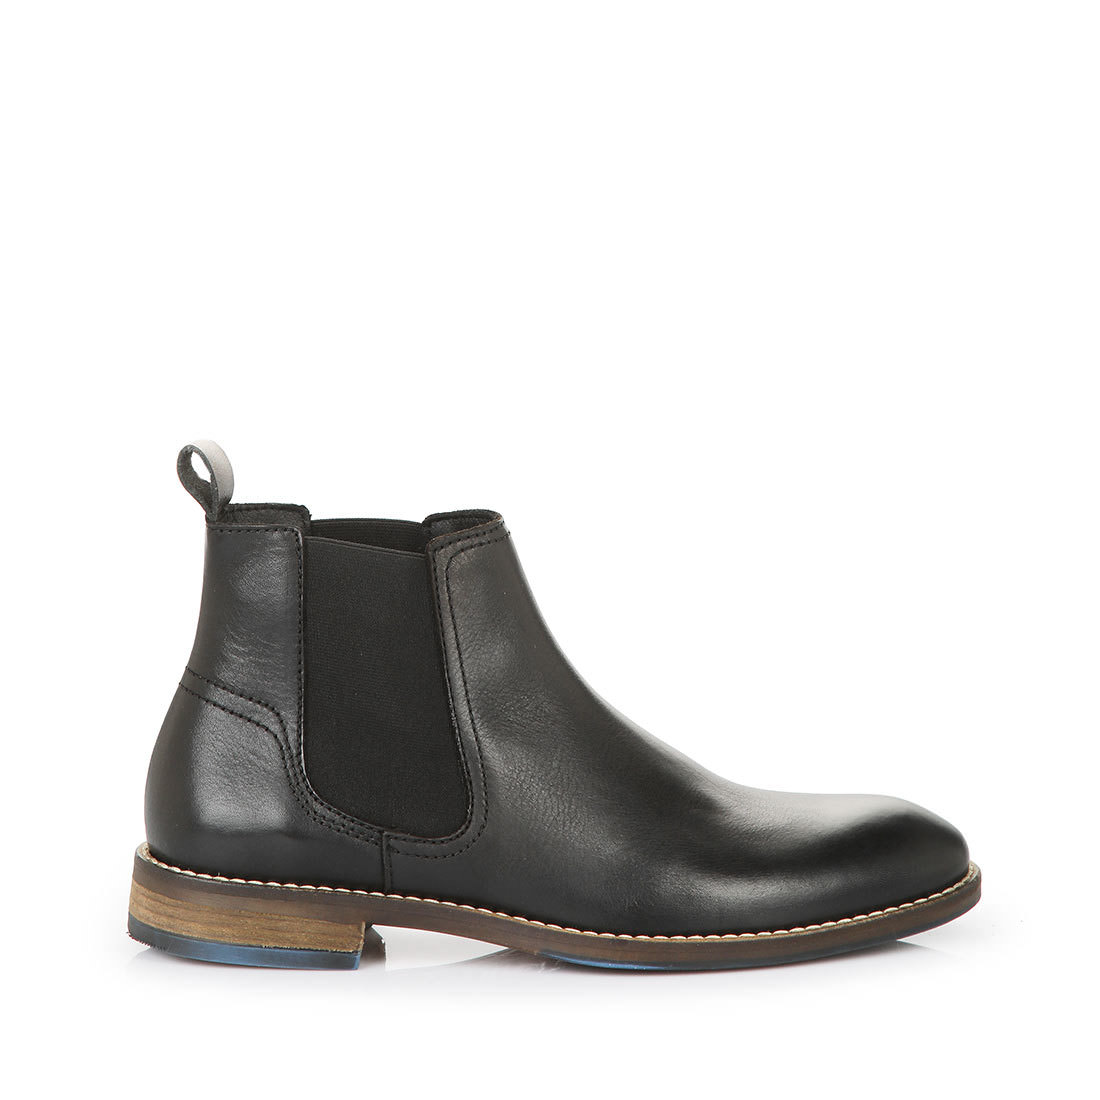 buffalo men s chelsea boots in black buy online in buffalo online shop buffalo. Black Bedroom Furniture Sets. Home Design Ideas